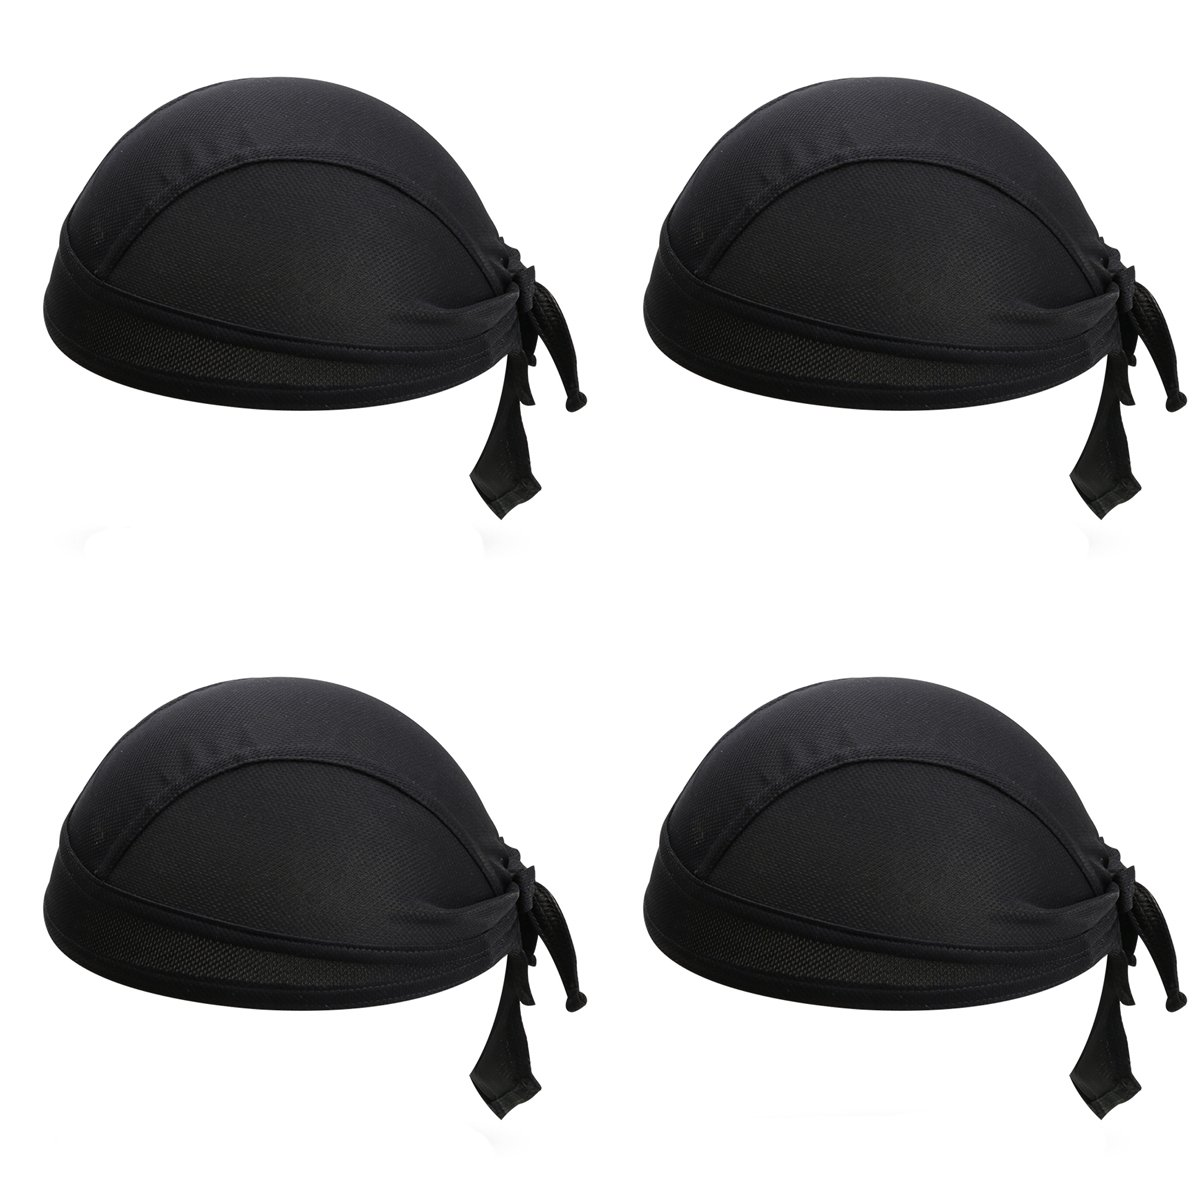 4Pcs/Set Black Skull Cap Quick Dry Adjustable Beanie Cap Bandana Pirate Scarf Head Wraps Dew Rap Sport Hat Cap for Cycling Motorcycle Running UV Protection (Black) YESURPRISE